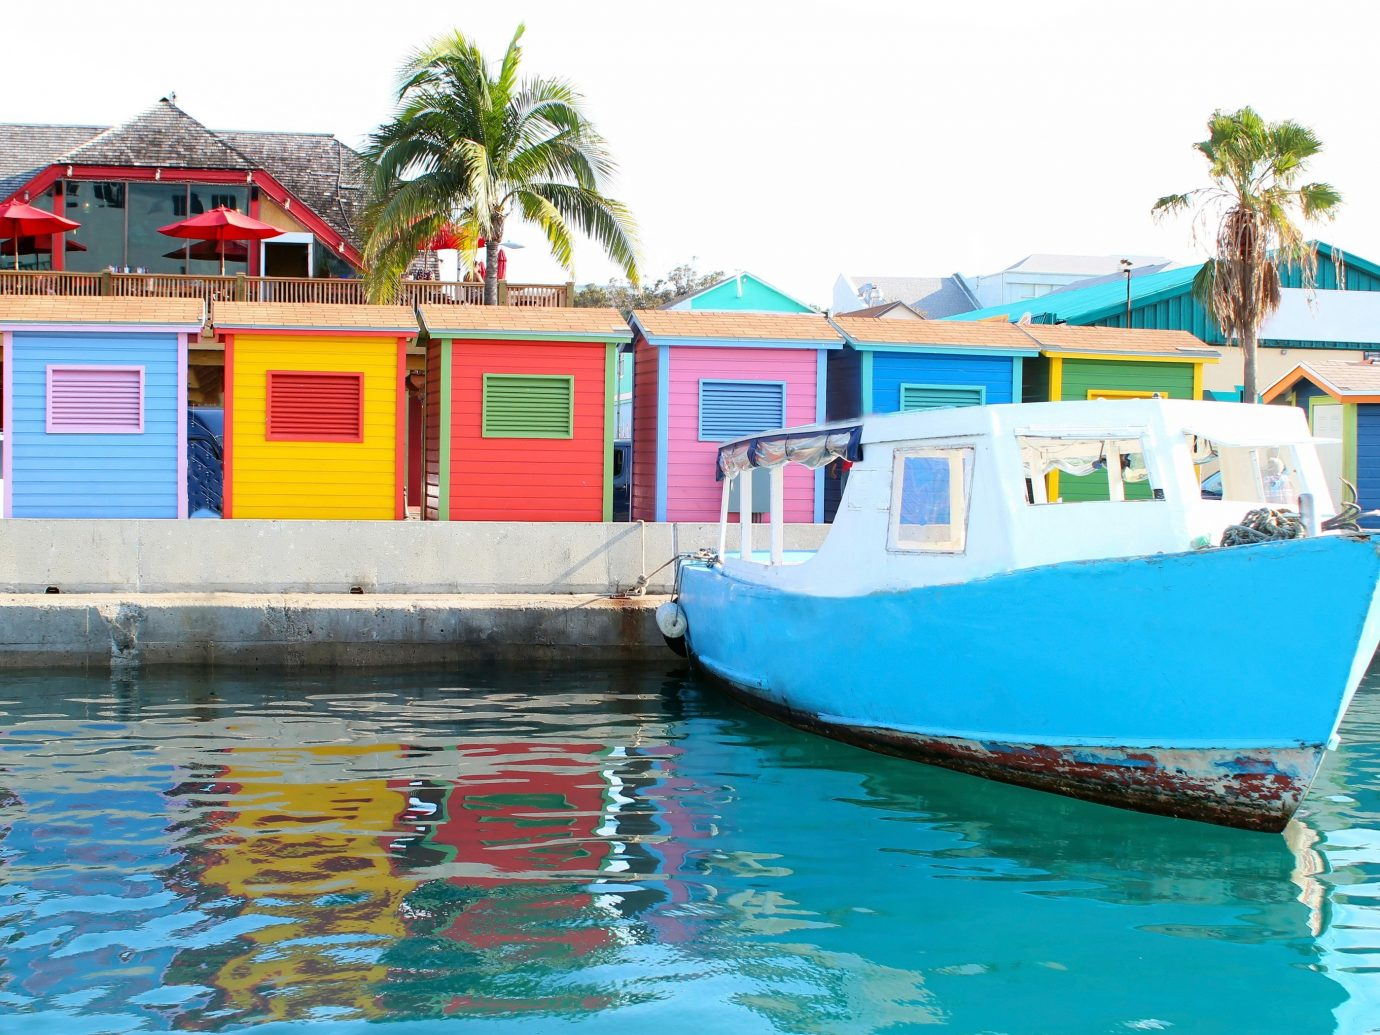 Trip Ideas water Boat outdoor leisure vehicle swimming pool Harbor Resort waterway colorful colored